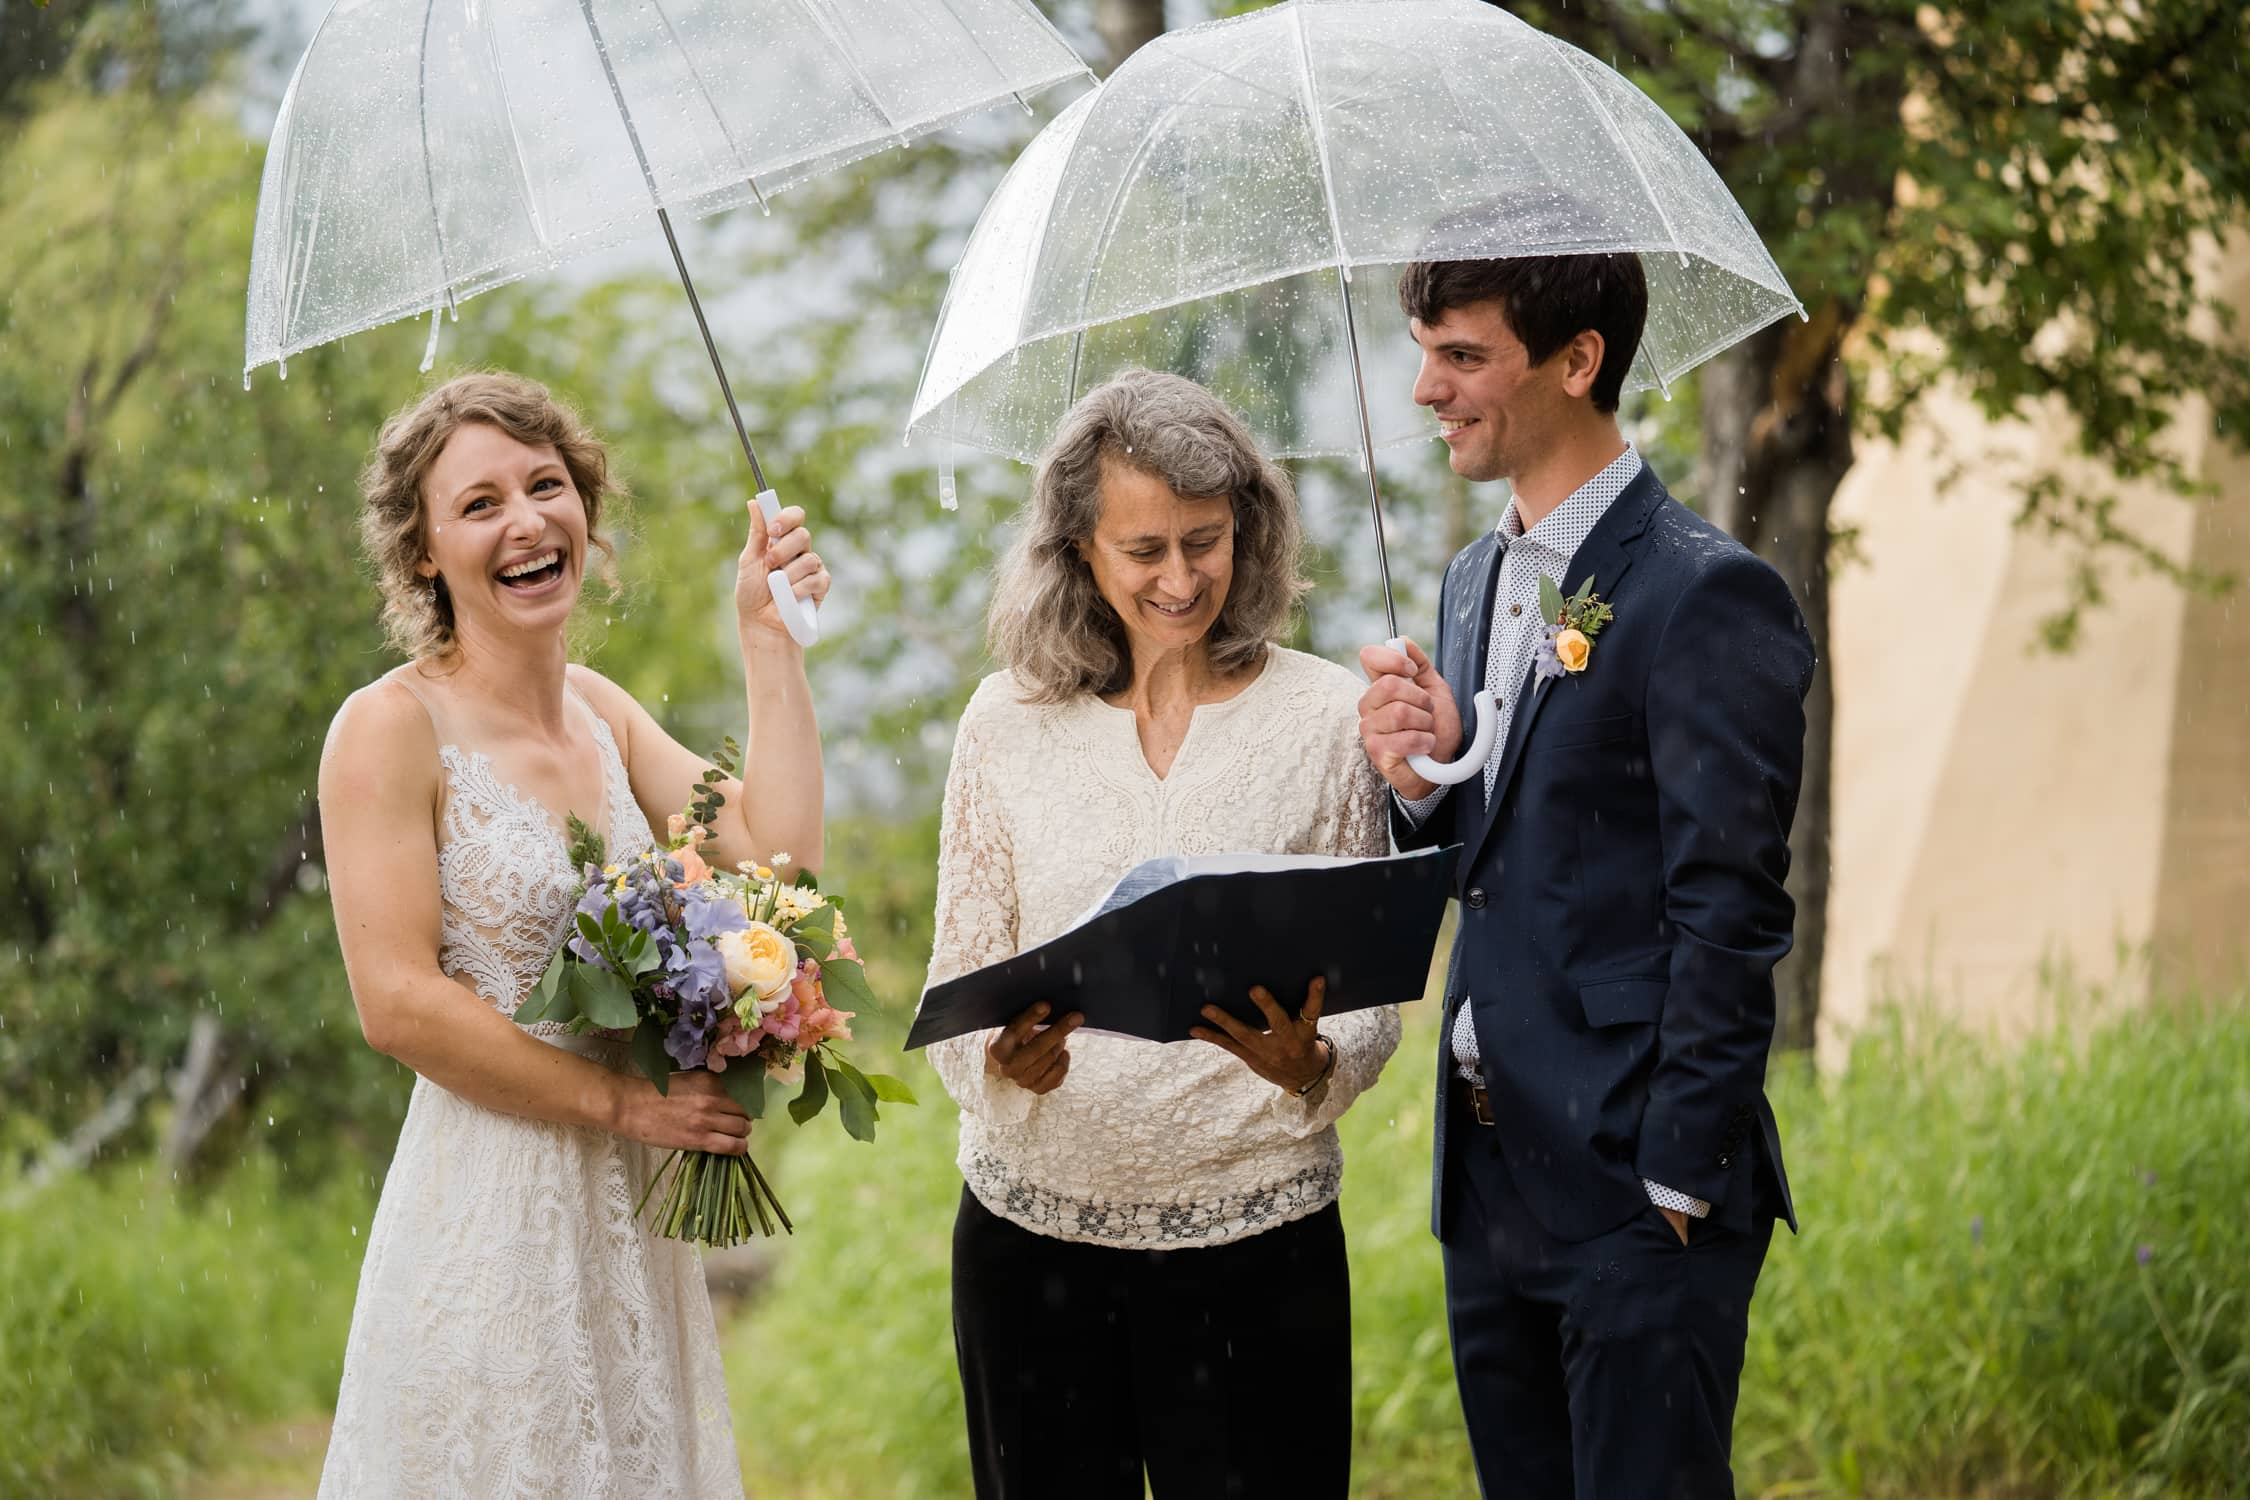 Newlyweds smile as the rain comes down during their ceremony in Nelson, British Columbia